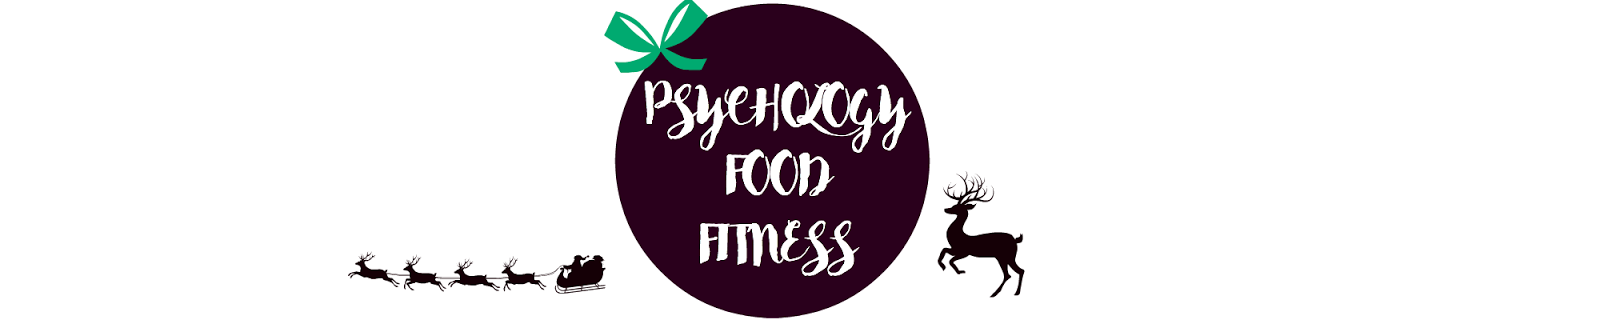 NM: Psychology, food and fitness.